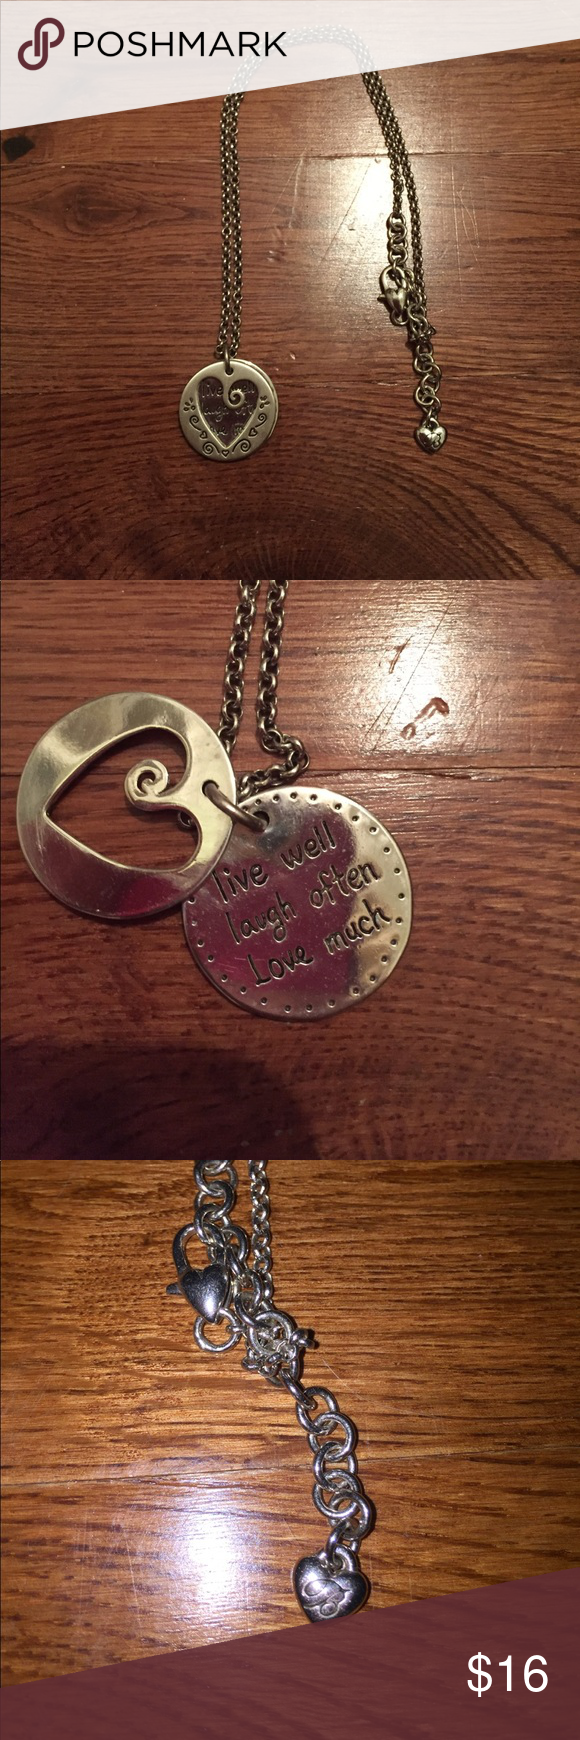 Brighton necklace Brighten necklace (engraved: live well ...